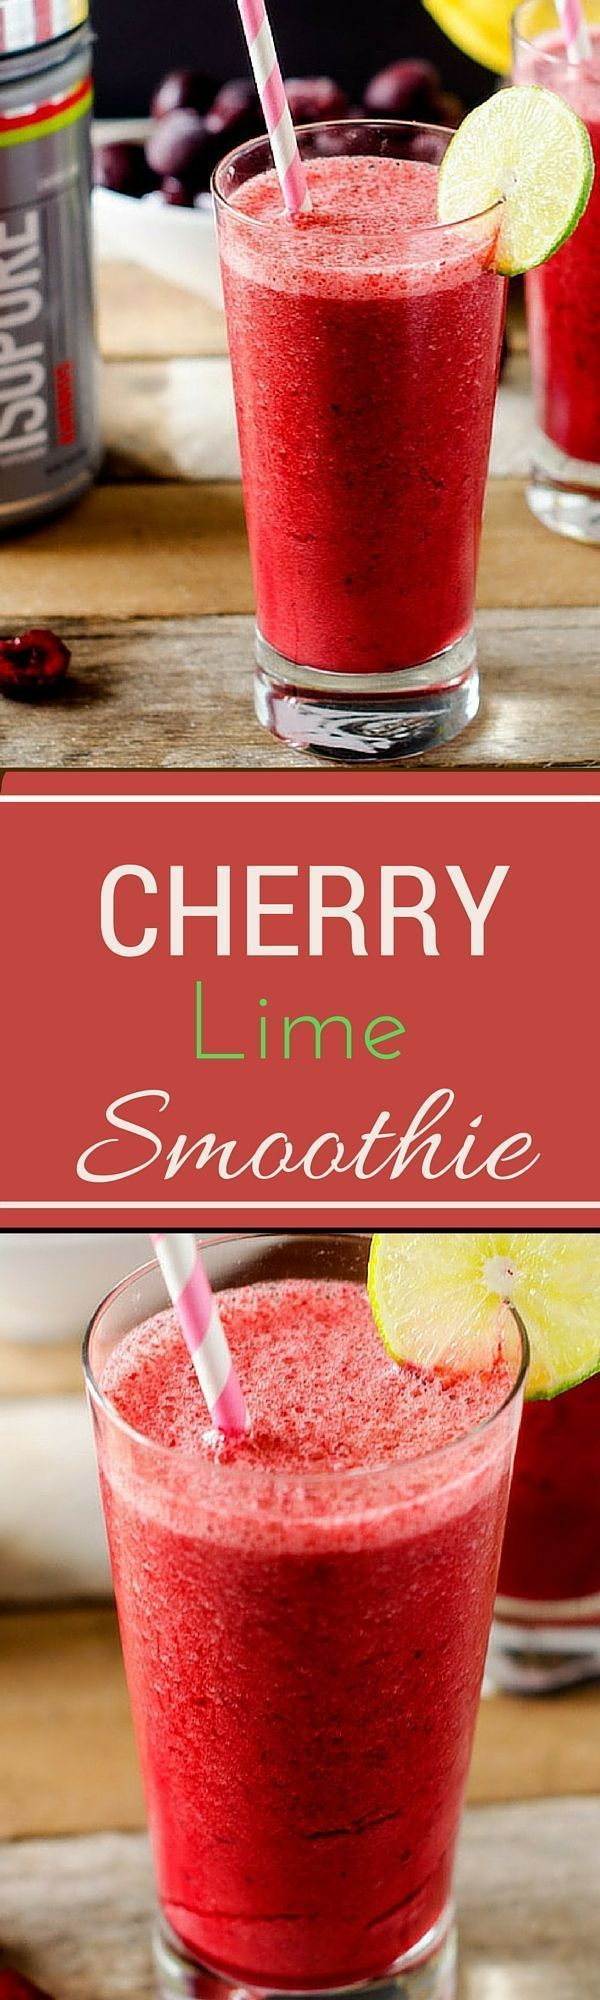 Cherry Lime Smoothie - WendyPolisi.com #behindthemuscle #isopure #sponsored @The Isopure Company